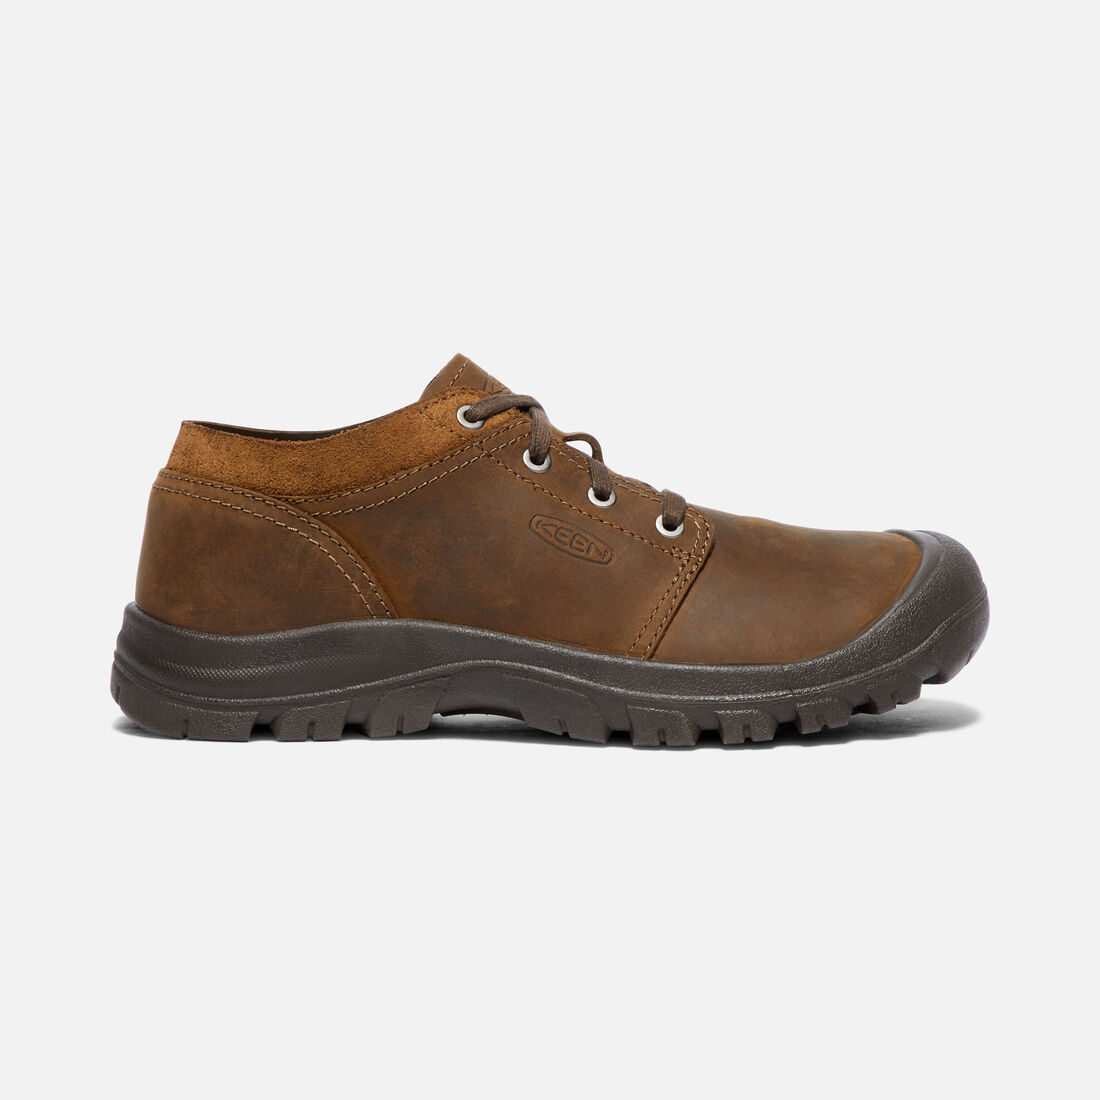 MEN'S GRAYSON OXFORD SHOES in Mid Brown/Scylum Full-Grain - large view.